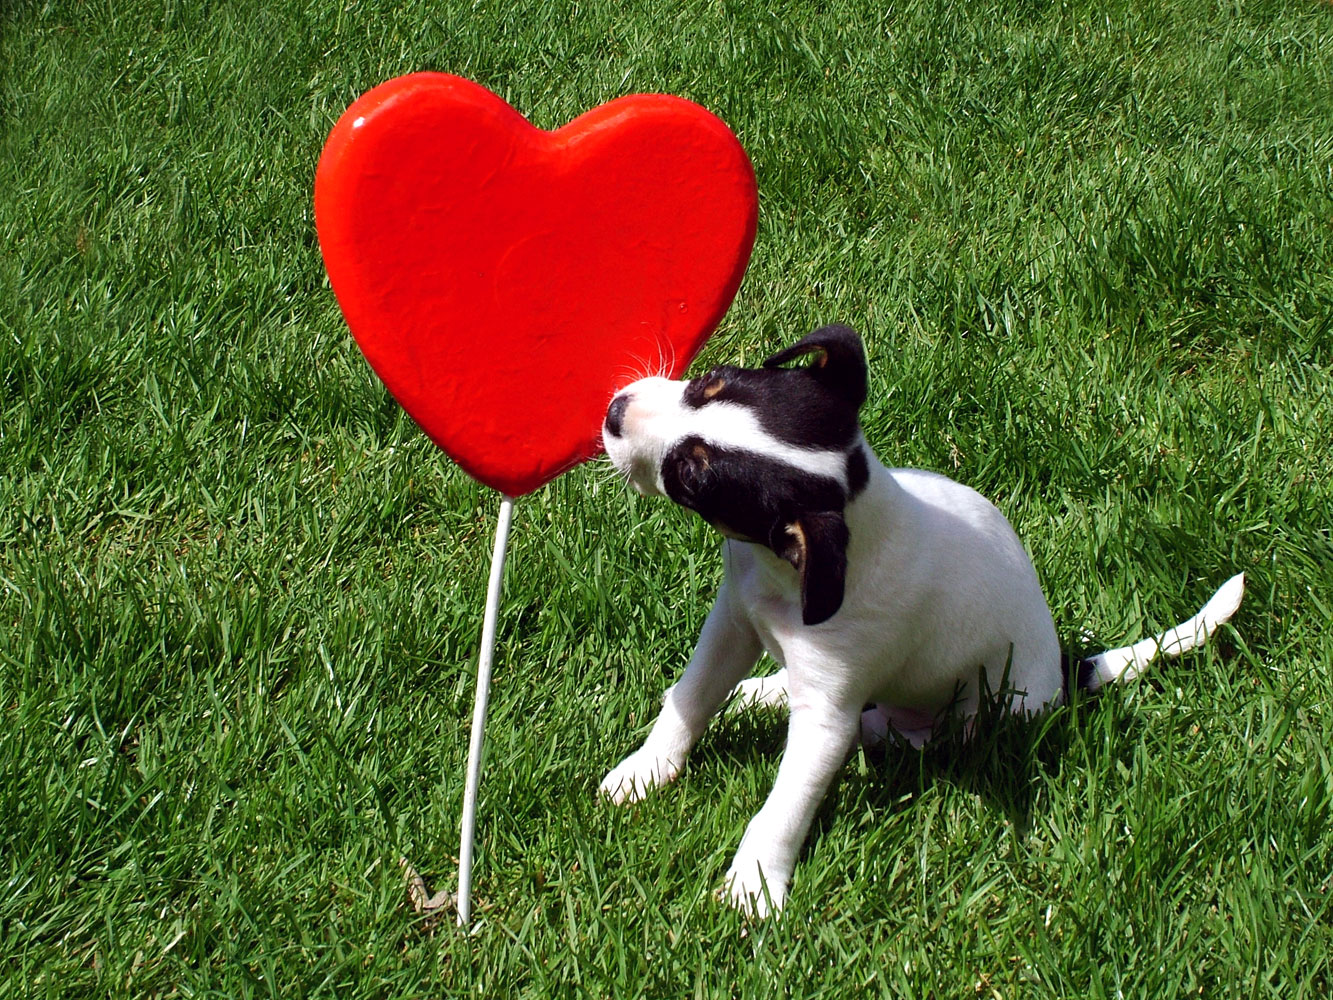 Puppy kissing a heart, Animal, Cute, Dog, Excitement, HQ Photo